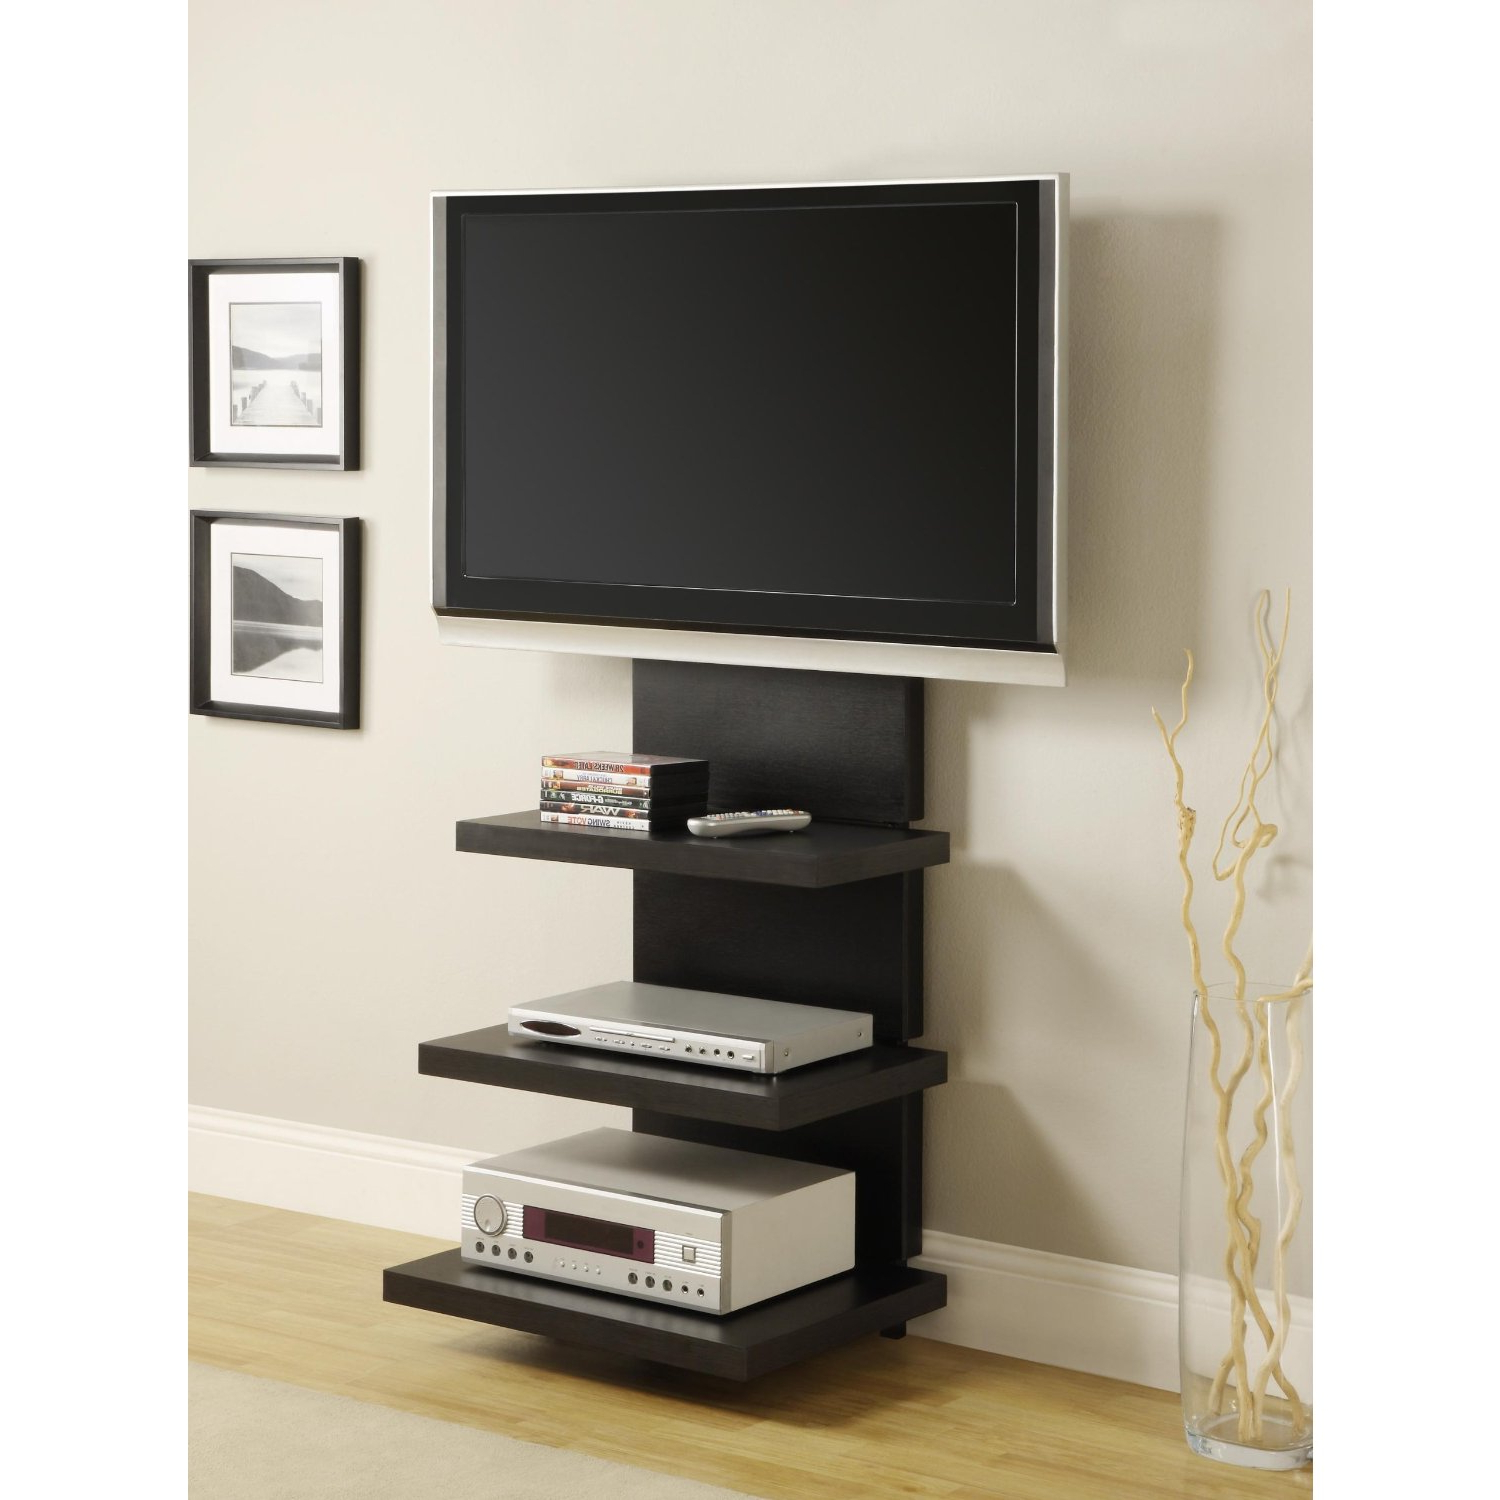 Tall Narrow Tv Stands With Recent Bedroom Television Cabinets And Stands Small Corner Tv Unit Tall Tv (View 4 of 20)